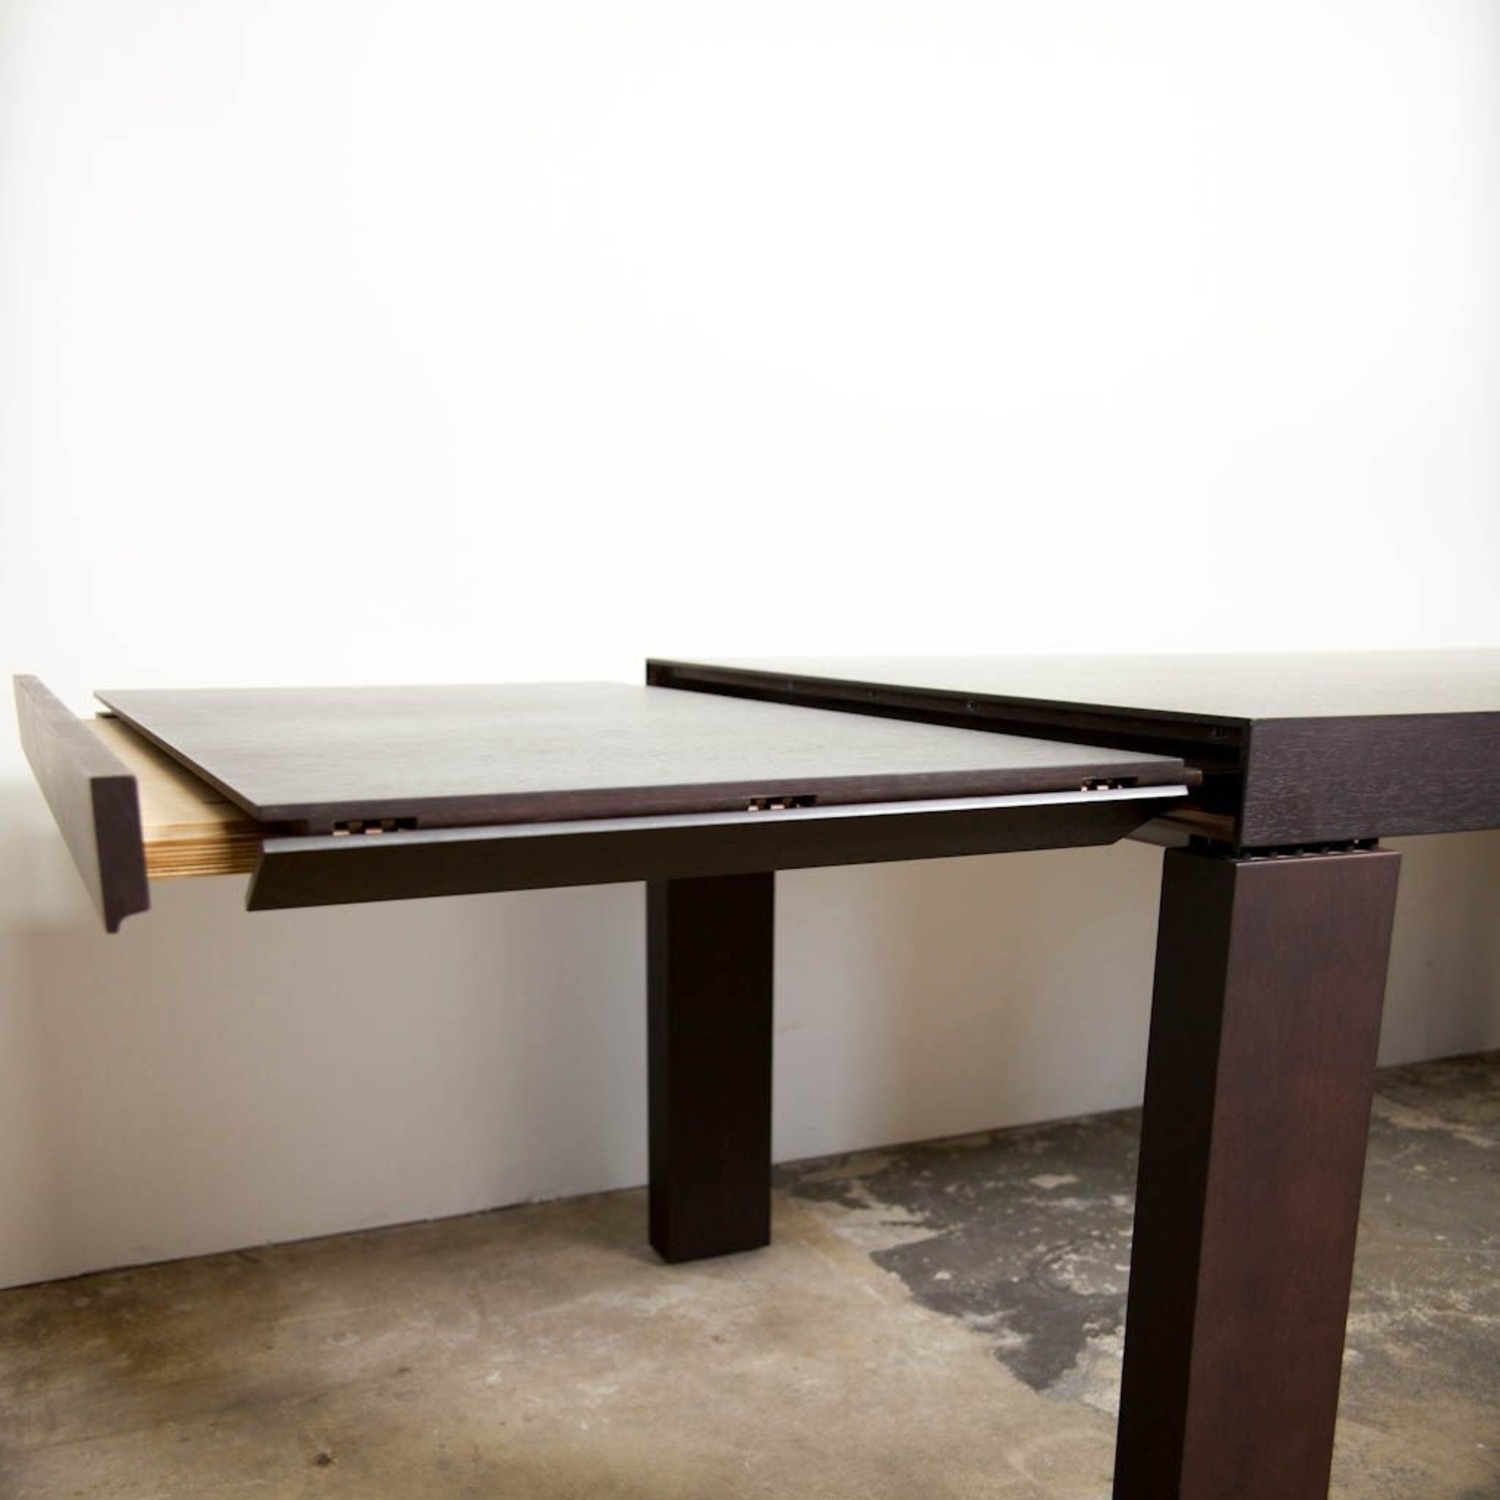 Molteni Luca Meda Extendable Dining Table - image-3